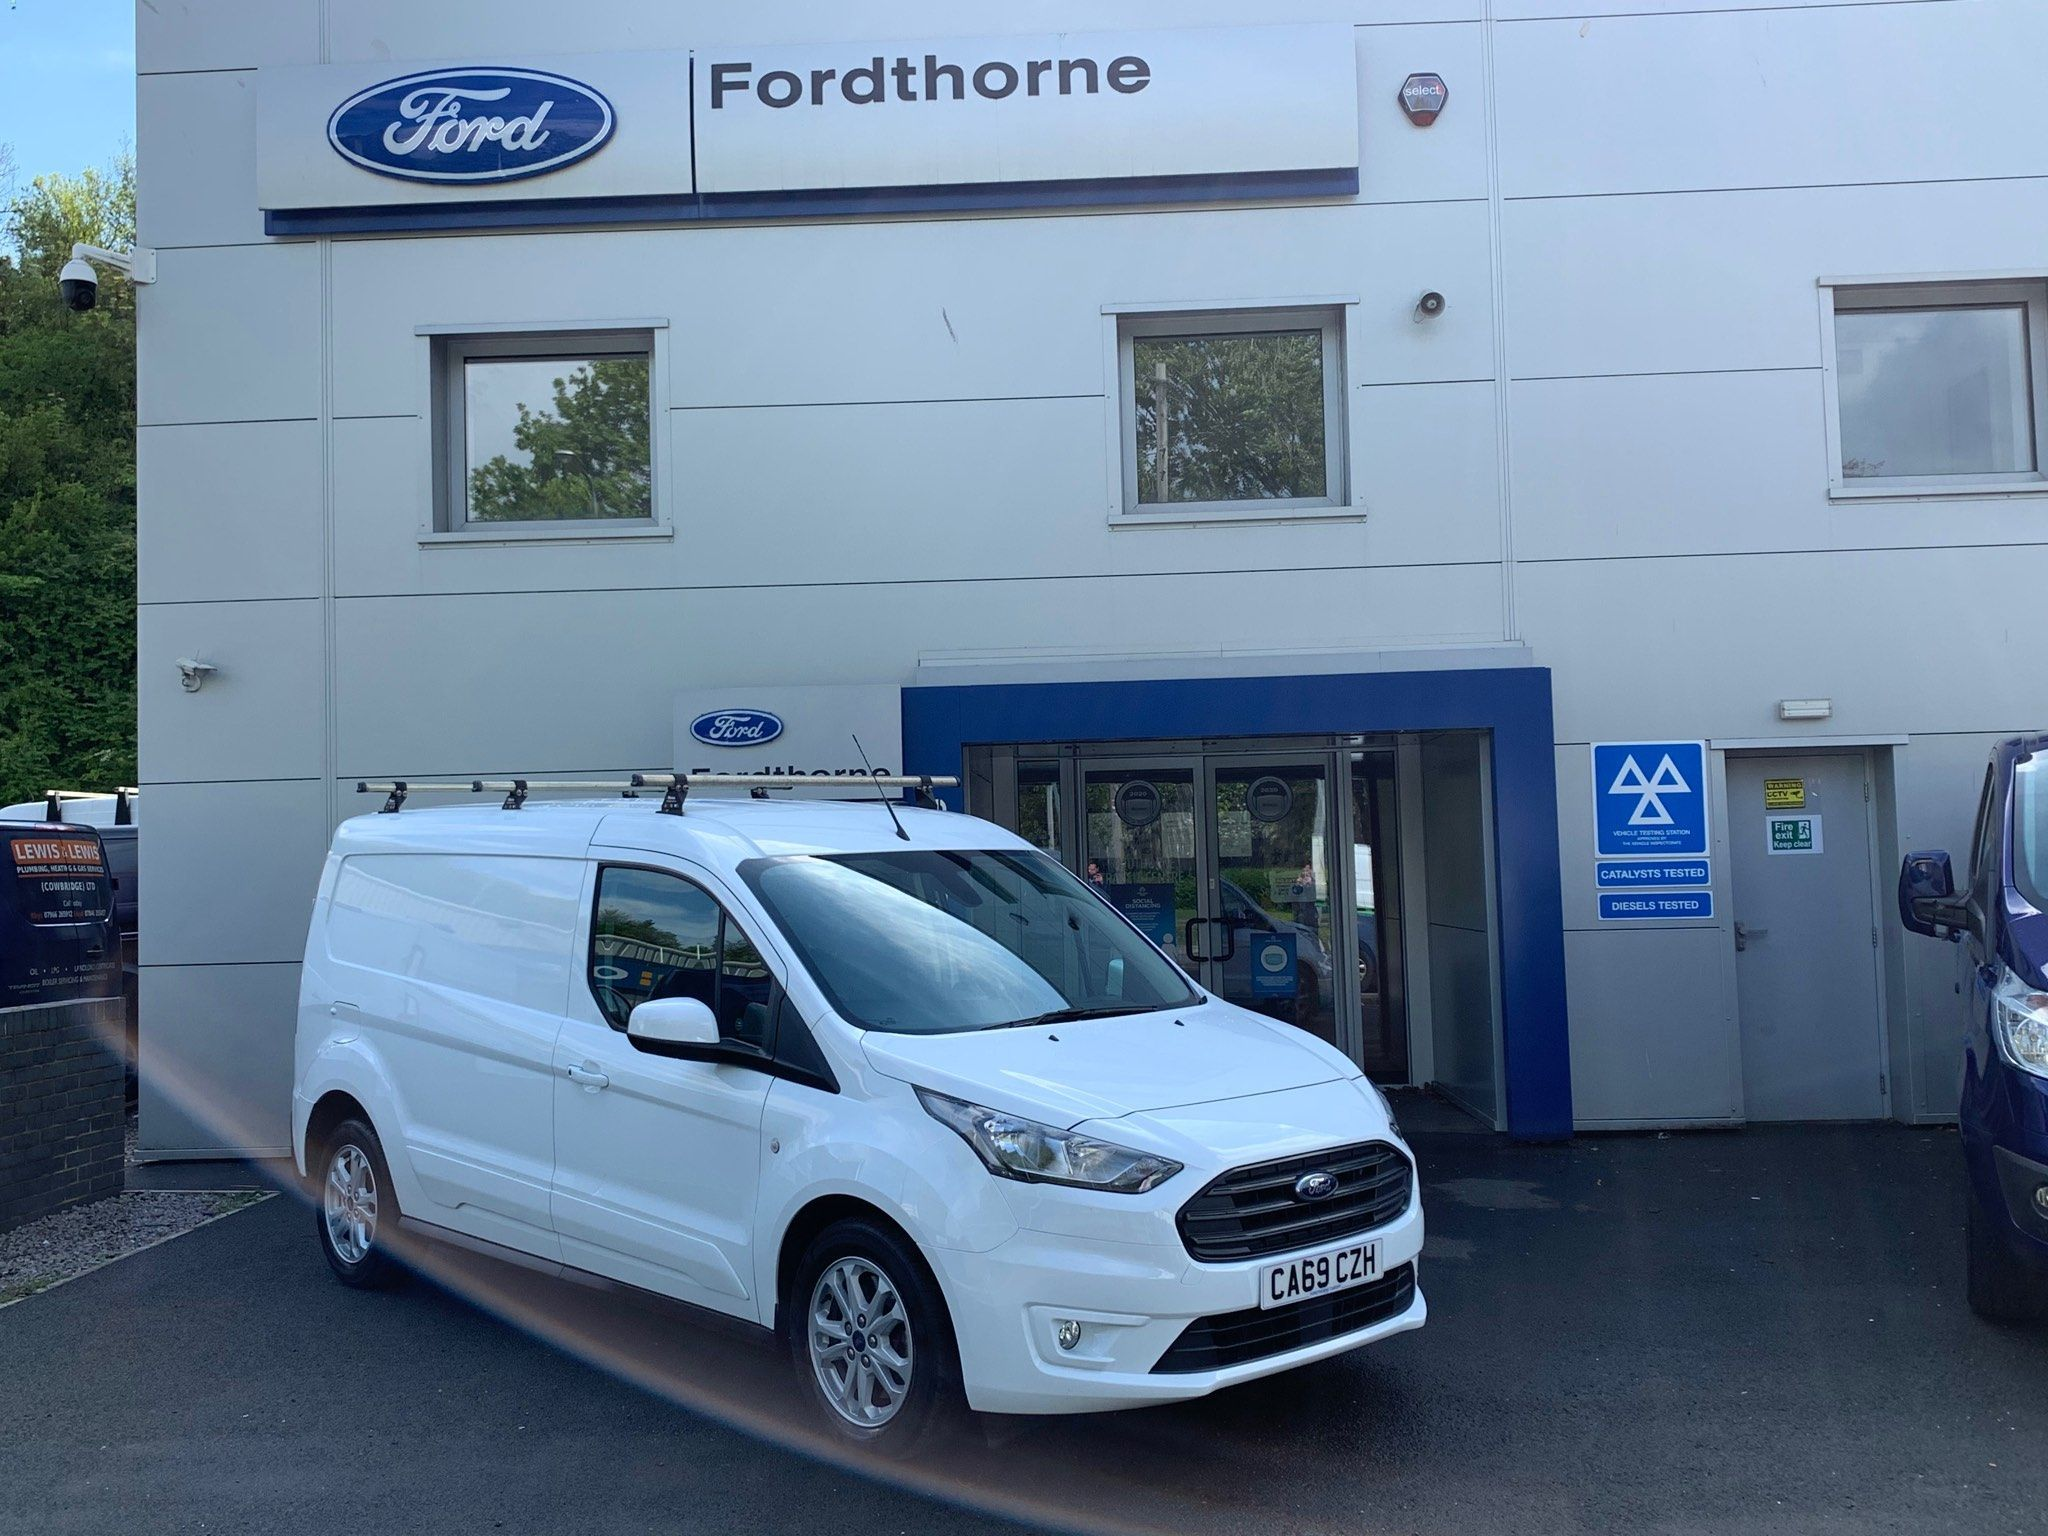 2019 Ford Transit Connect EcoBlue Limited